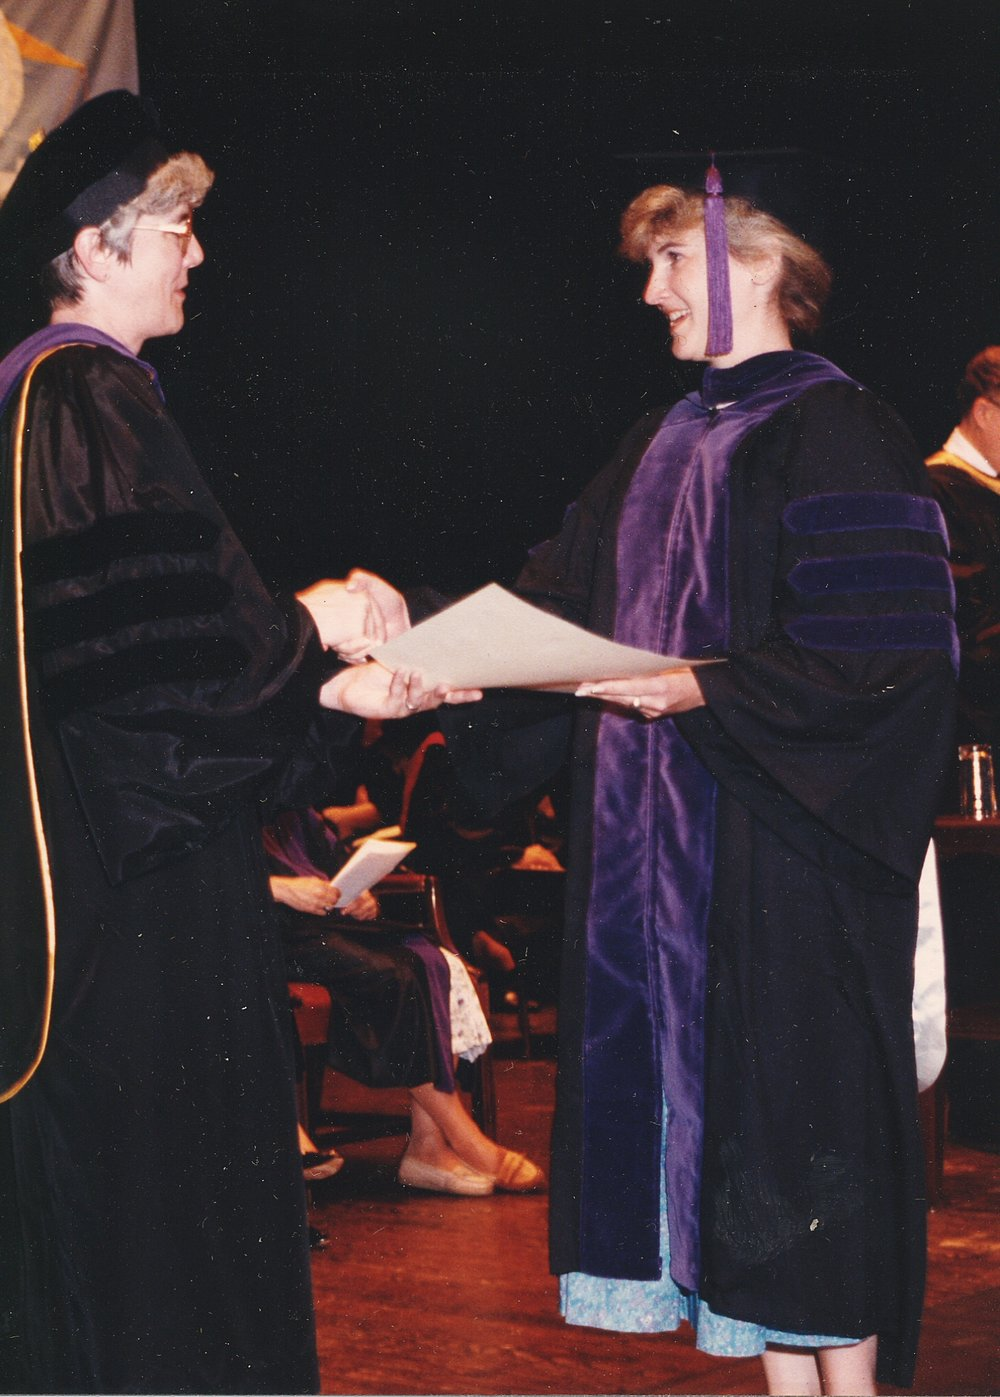 LawSchoolGraduation 02.jpg